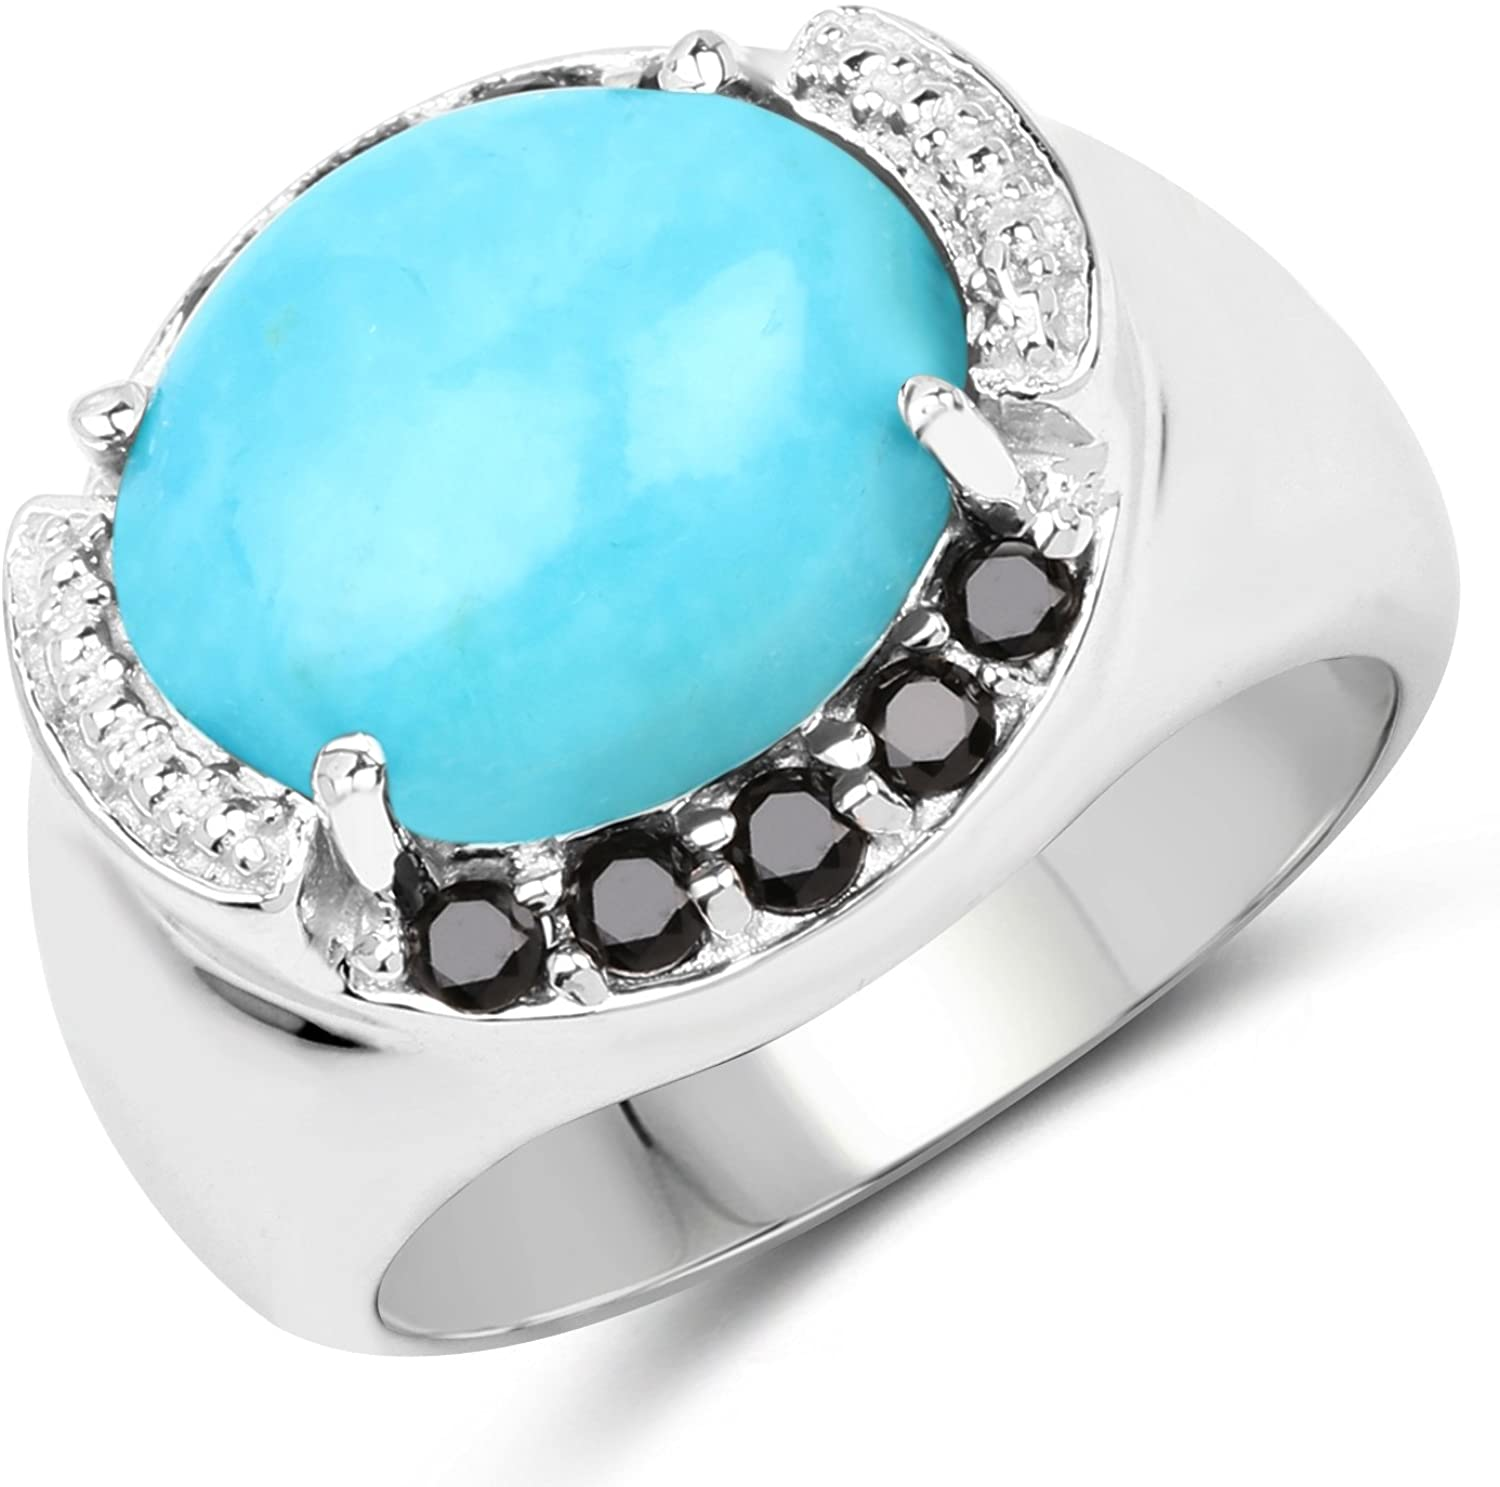 4.58 Carat Genuine Turquoise and Black Spinel .925 Sterling Silver Ring